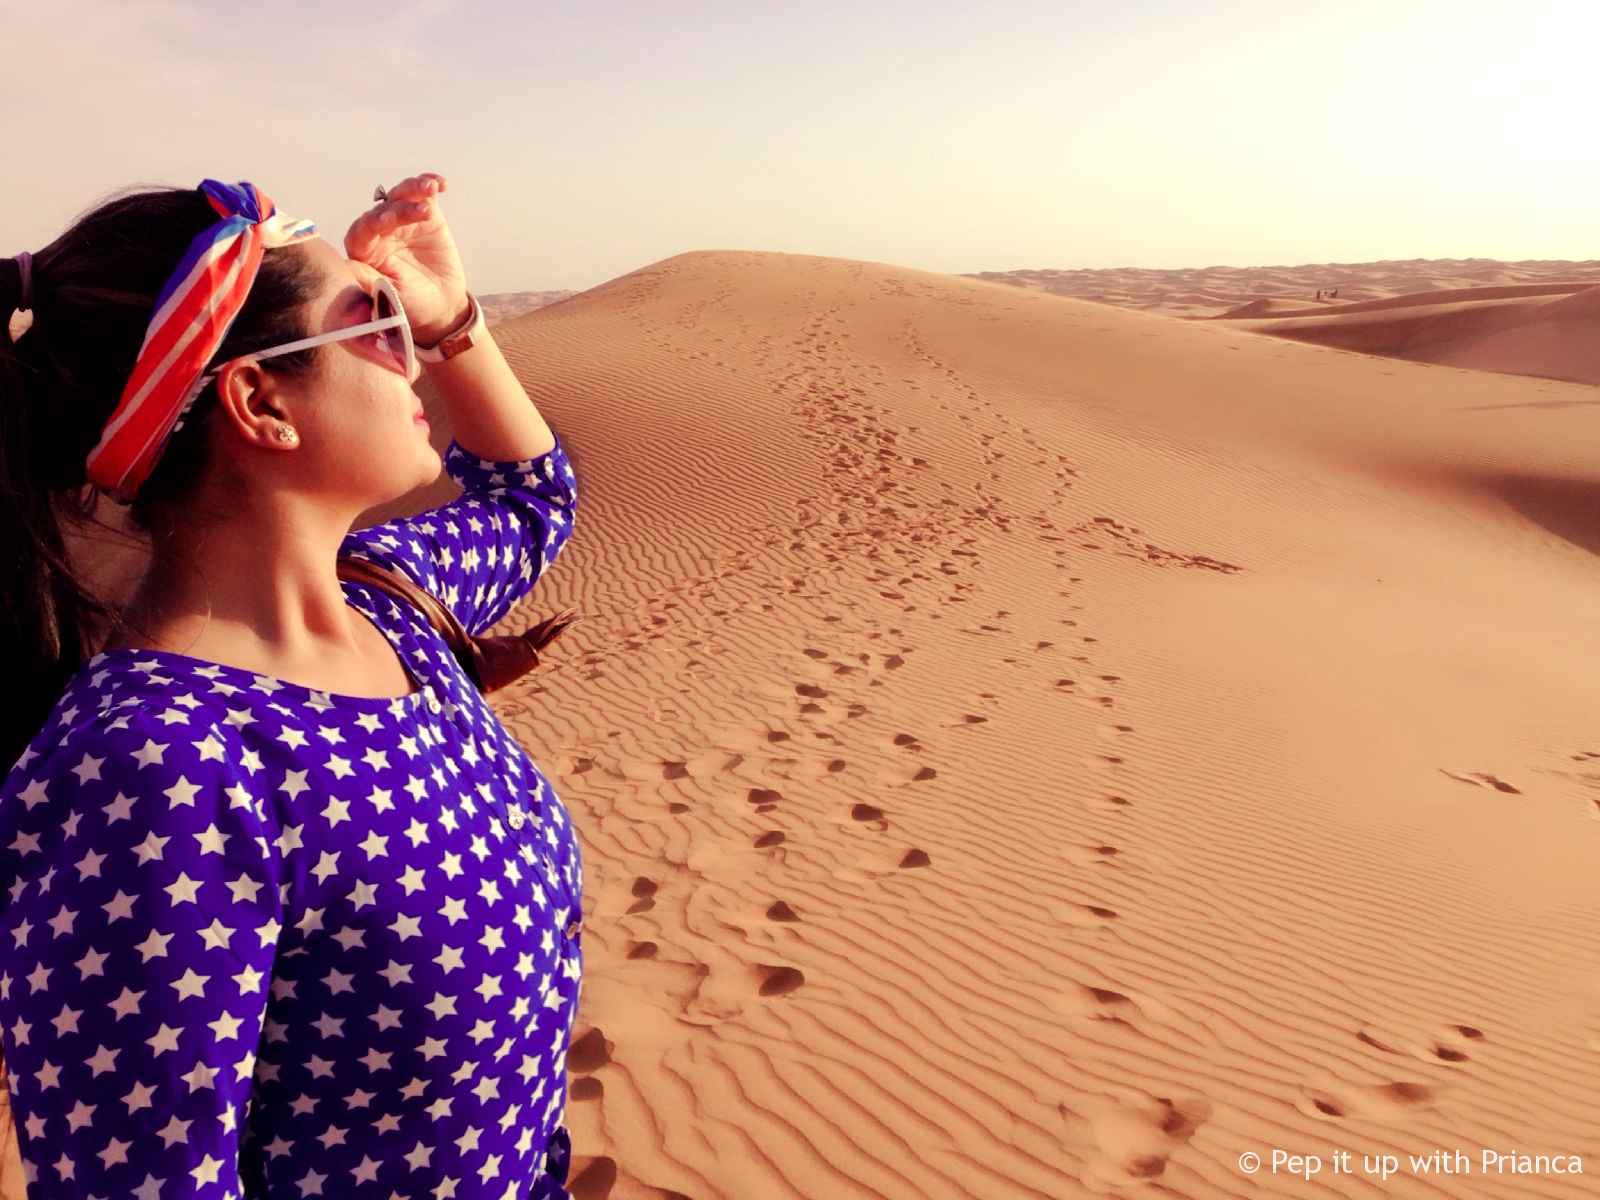 Dubai desert pep it up with prianca - Travel to the Desert to 'Desert' Yourself & Find your Soul - Magnificent Dubai Desert